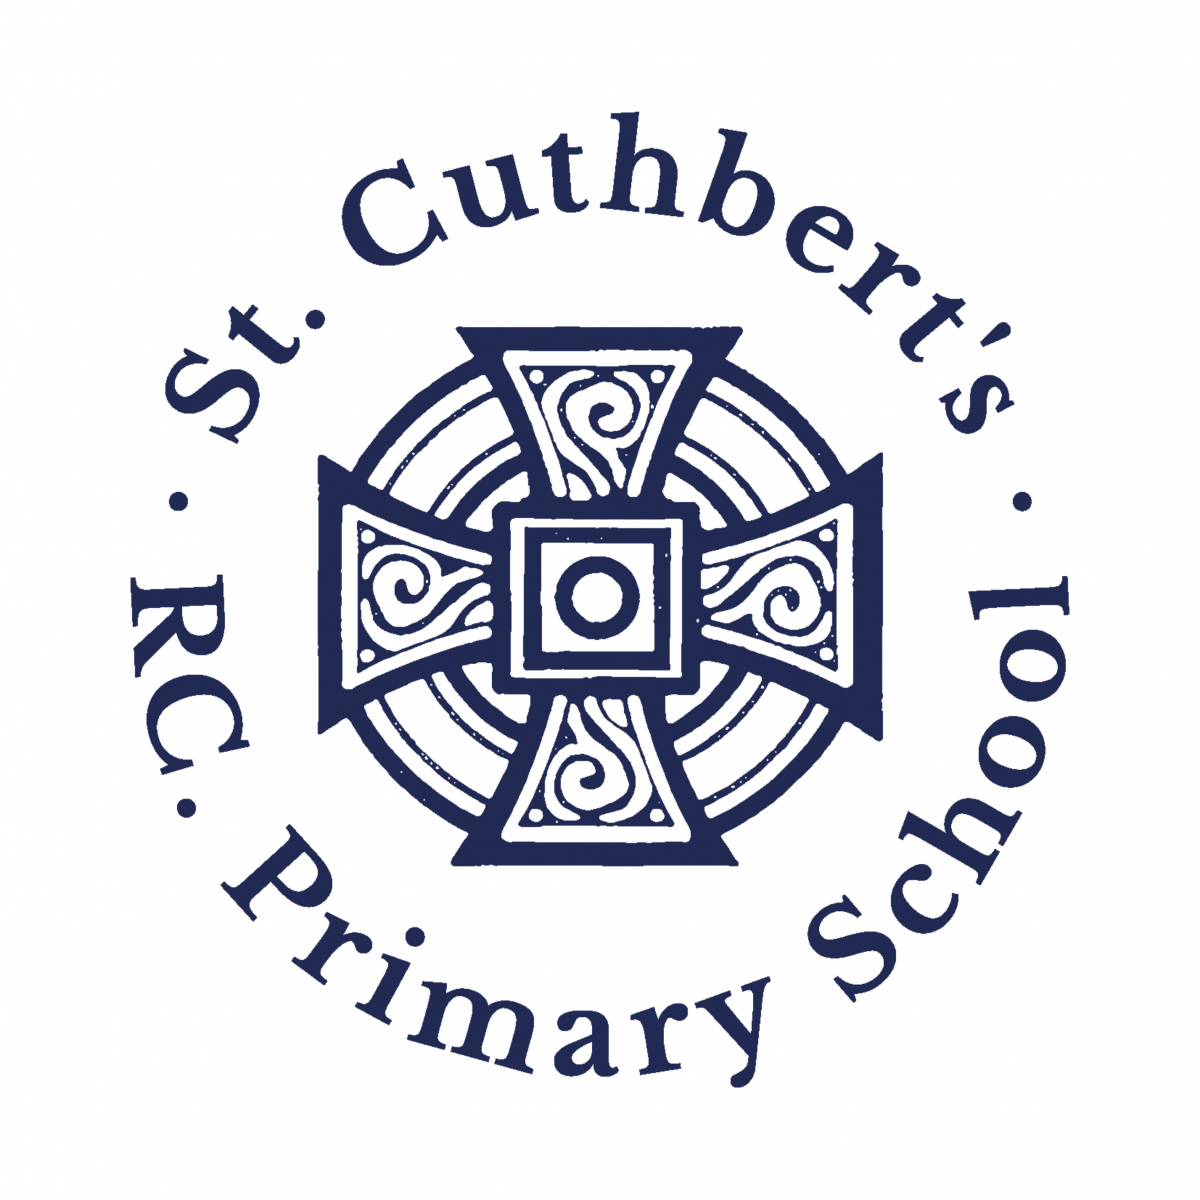 st Cuthberts primary school logo